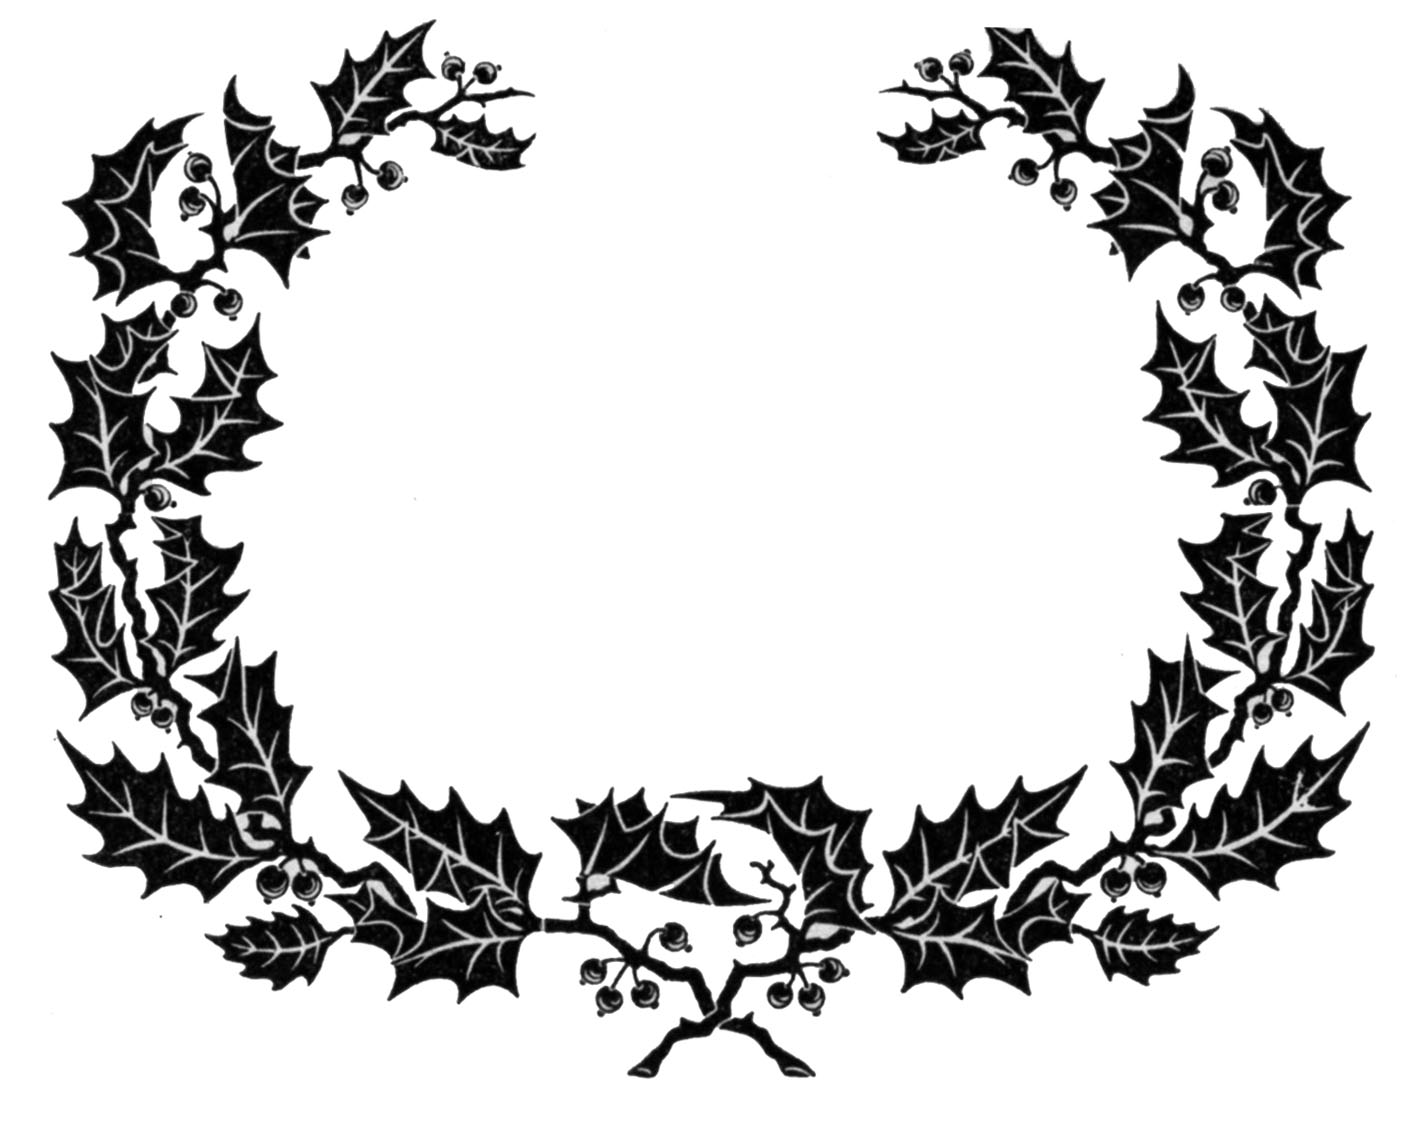 Vintage Clip Art - Holly Wreath Graphic Frame - The Graphics Fairy